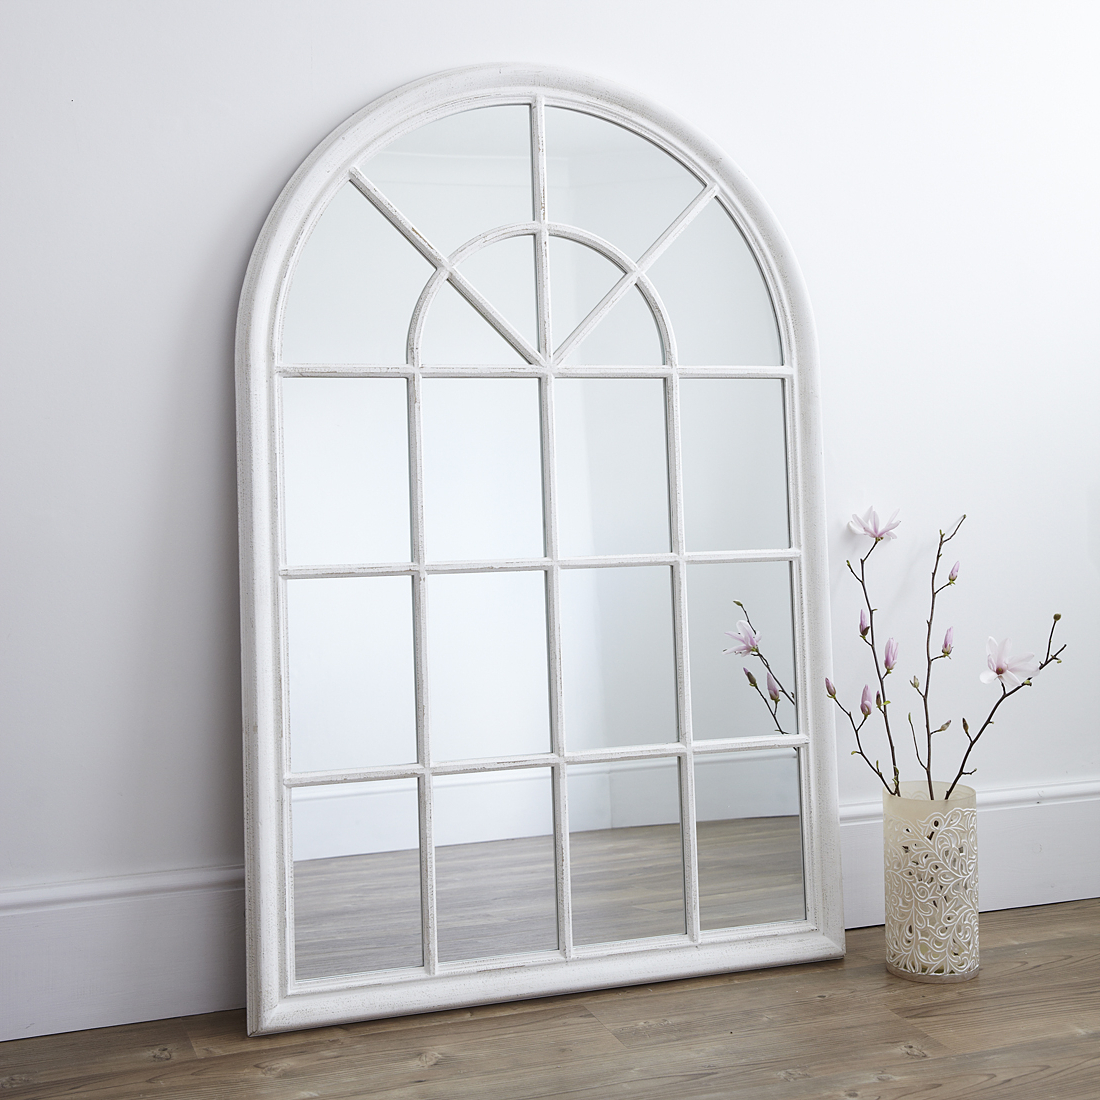 Most Recently Released White Arched Window Wall Mirror Inside Window Wall Mirrors (View 4 of 20)